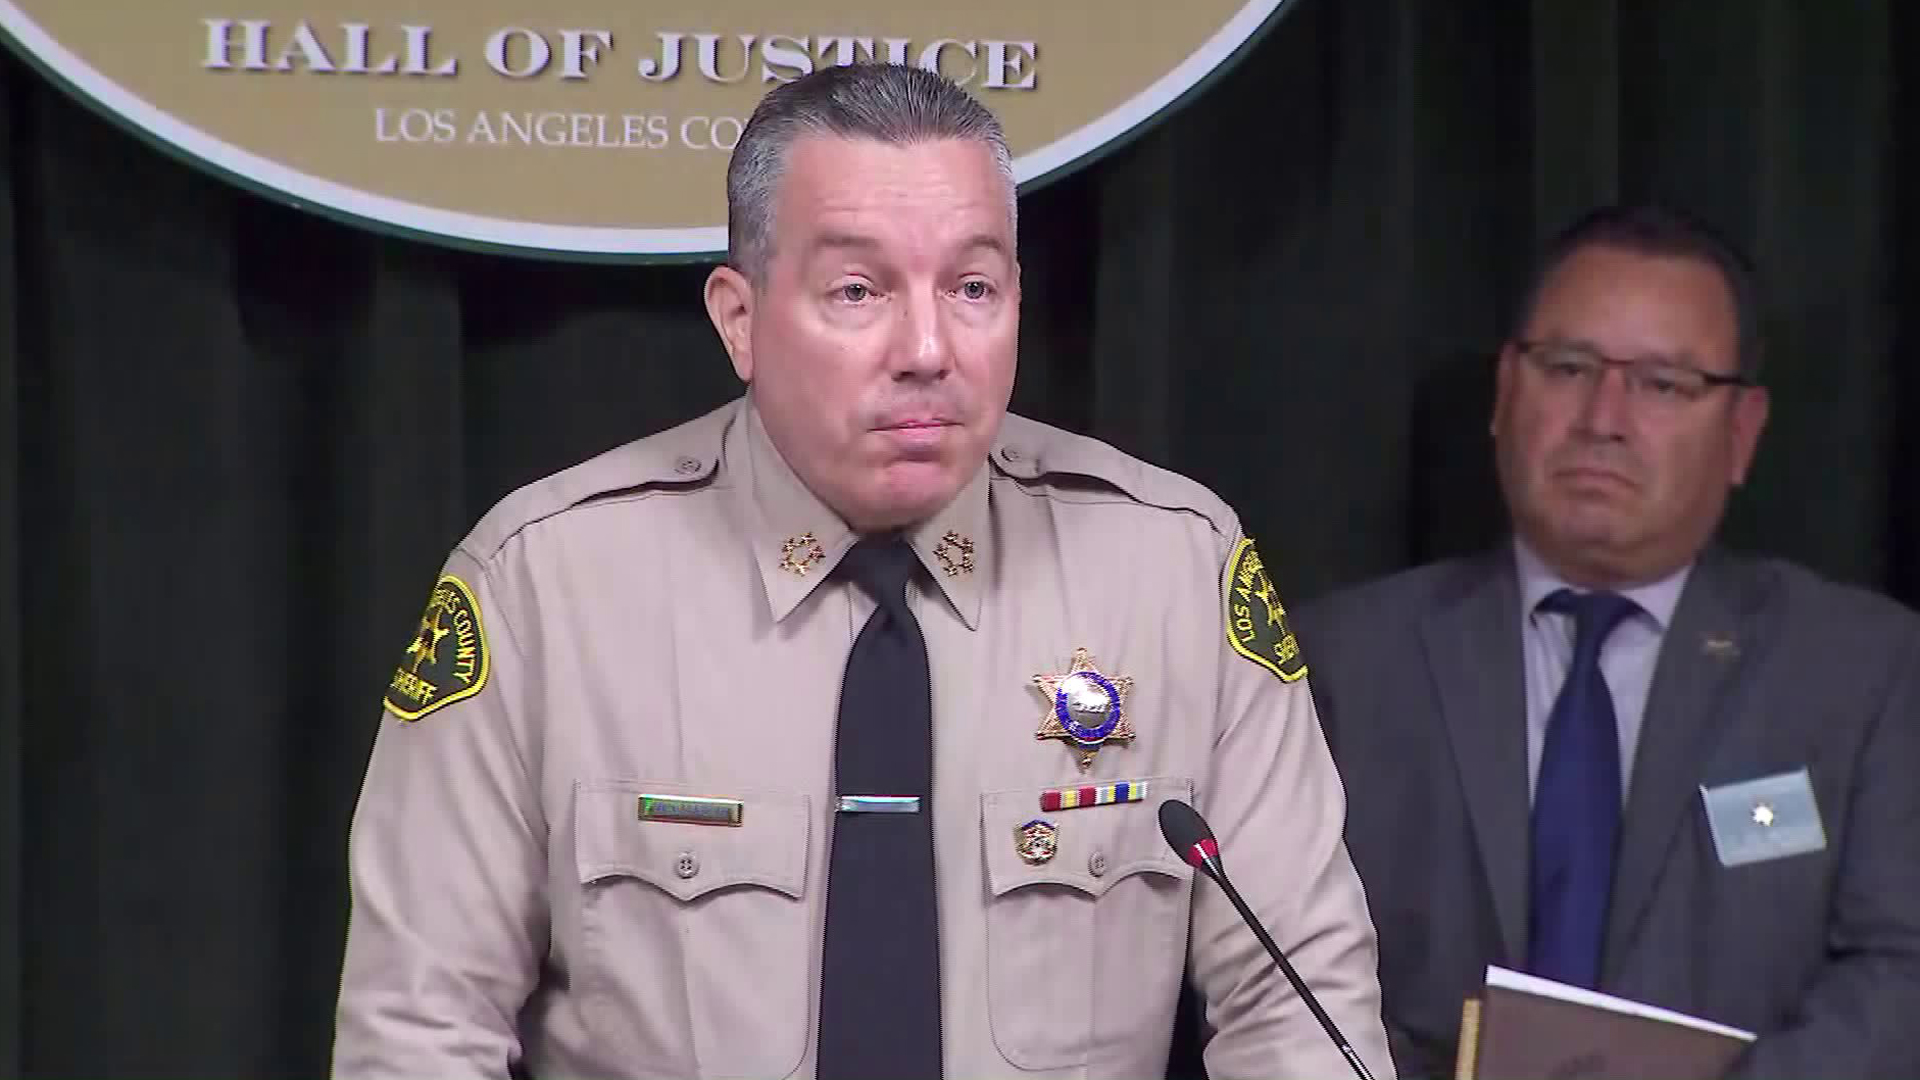 Los Angeles County Sheriff Alex Villanueva speaks at a press conference at the Hall of Justice in downtown L.A. on July 9, 2019. (Credit: KTLA)